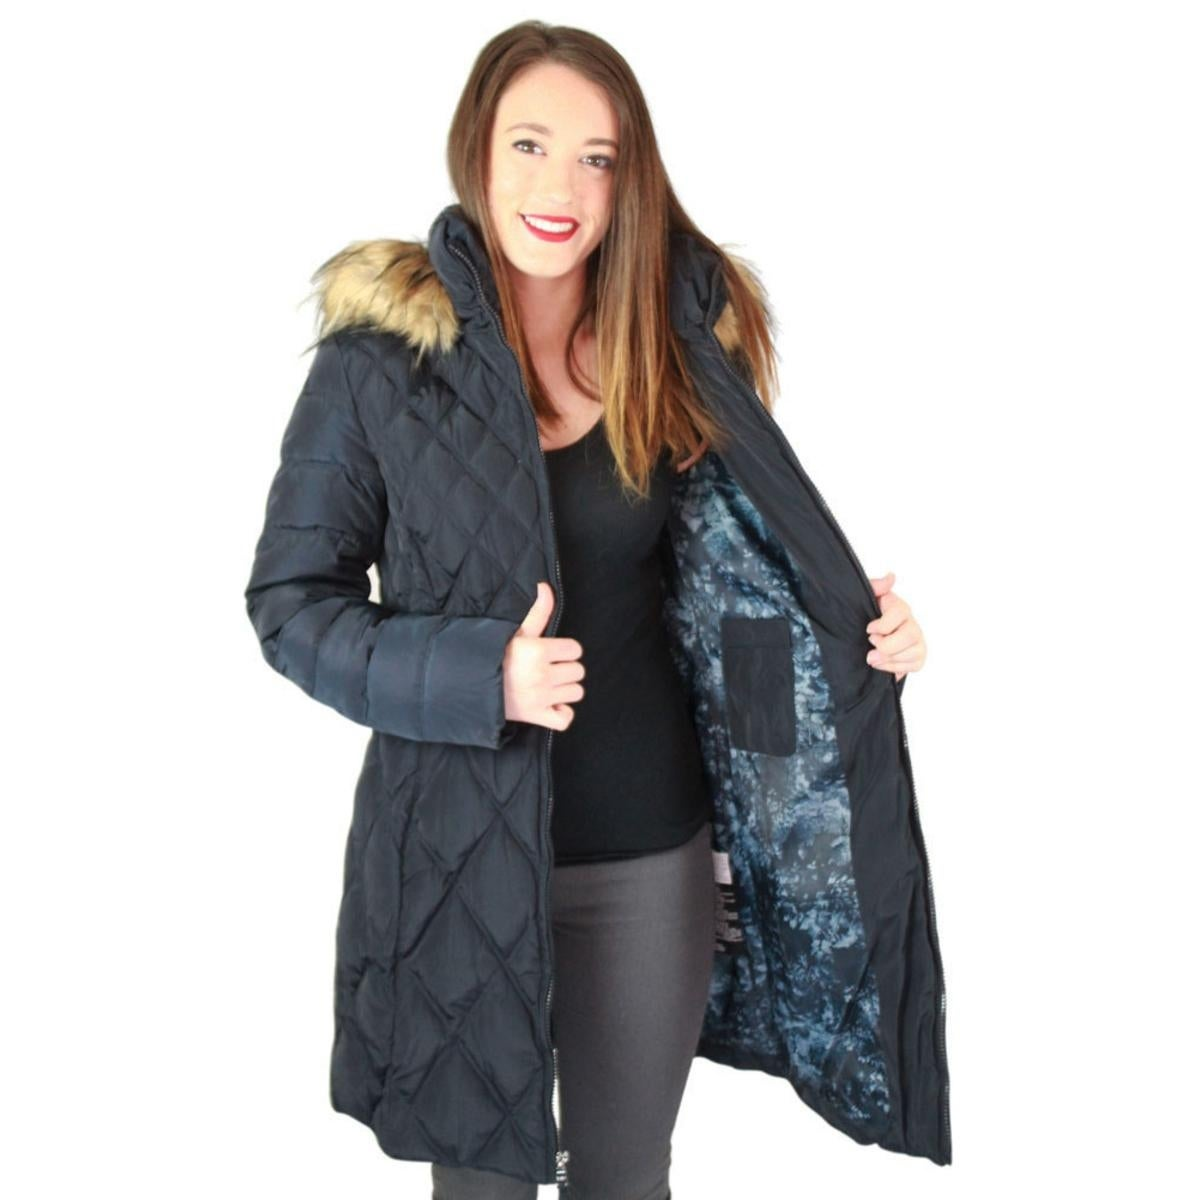 533808e4513 Shop Jessica Simpson Womens Parka Coat Down Quilted - On Sale - Free  Shipping Today - Overstock - 23622507